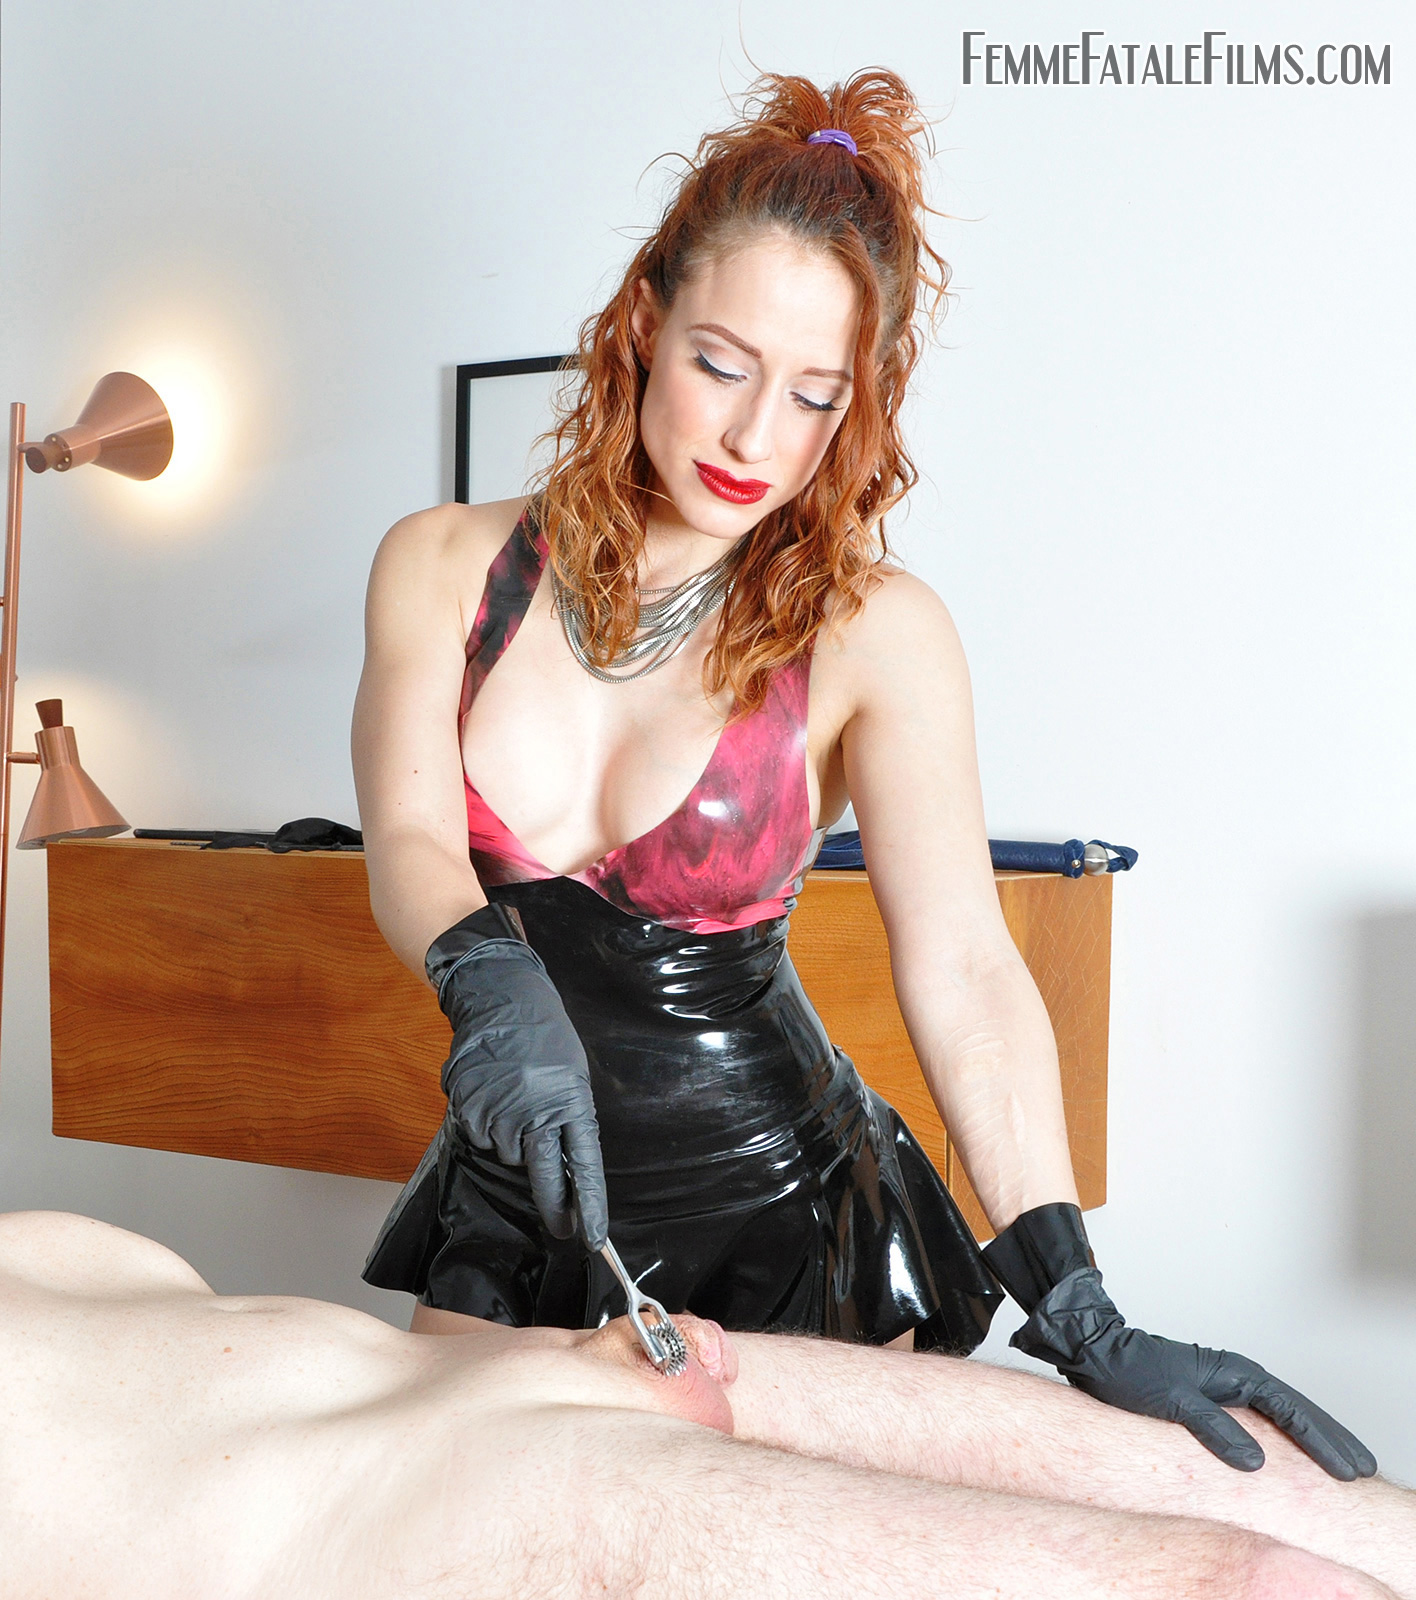 she plugs the slave's arse with a butt plug and to add to his humiliation then she fucks him hard while torturing his cock and balls with CBT